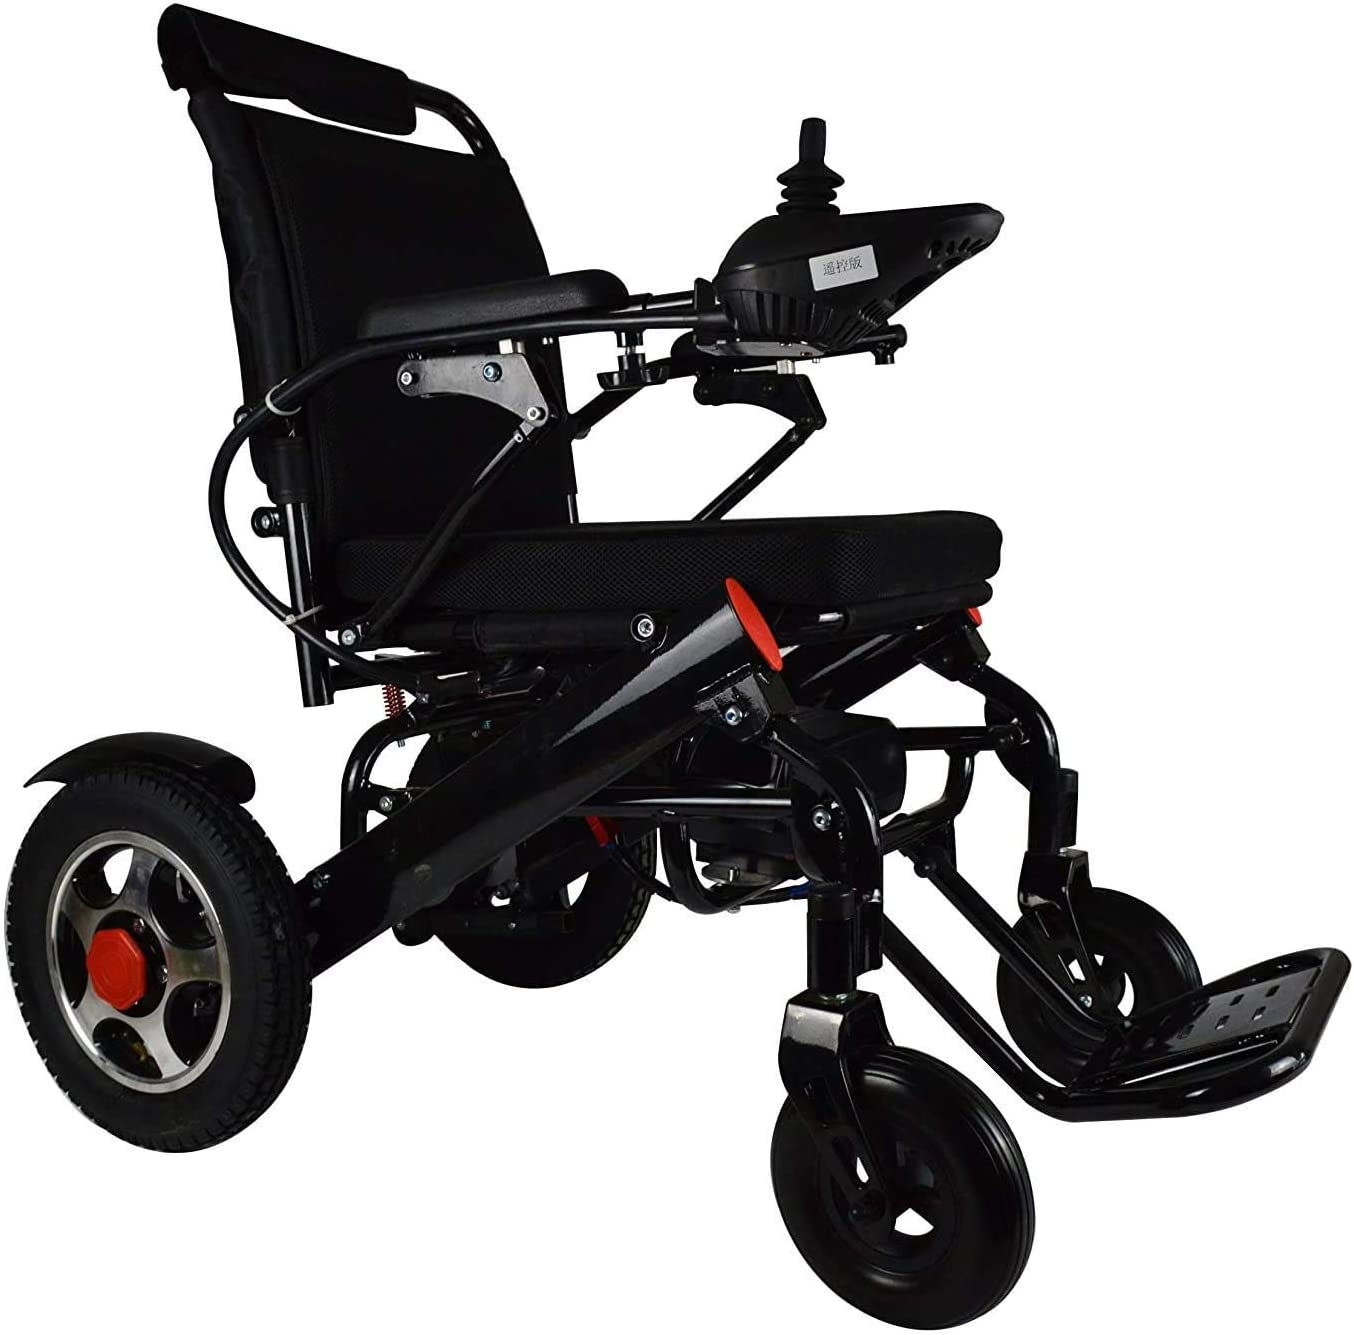 Portable Sales results No. 1 Mobility Electric Motorized Wheelchair Lightweight Eas Super beauty product restock quality top!